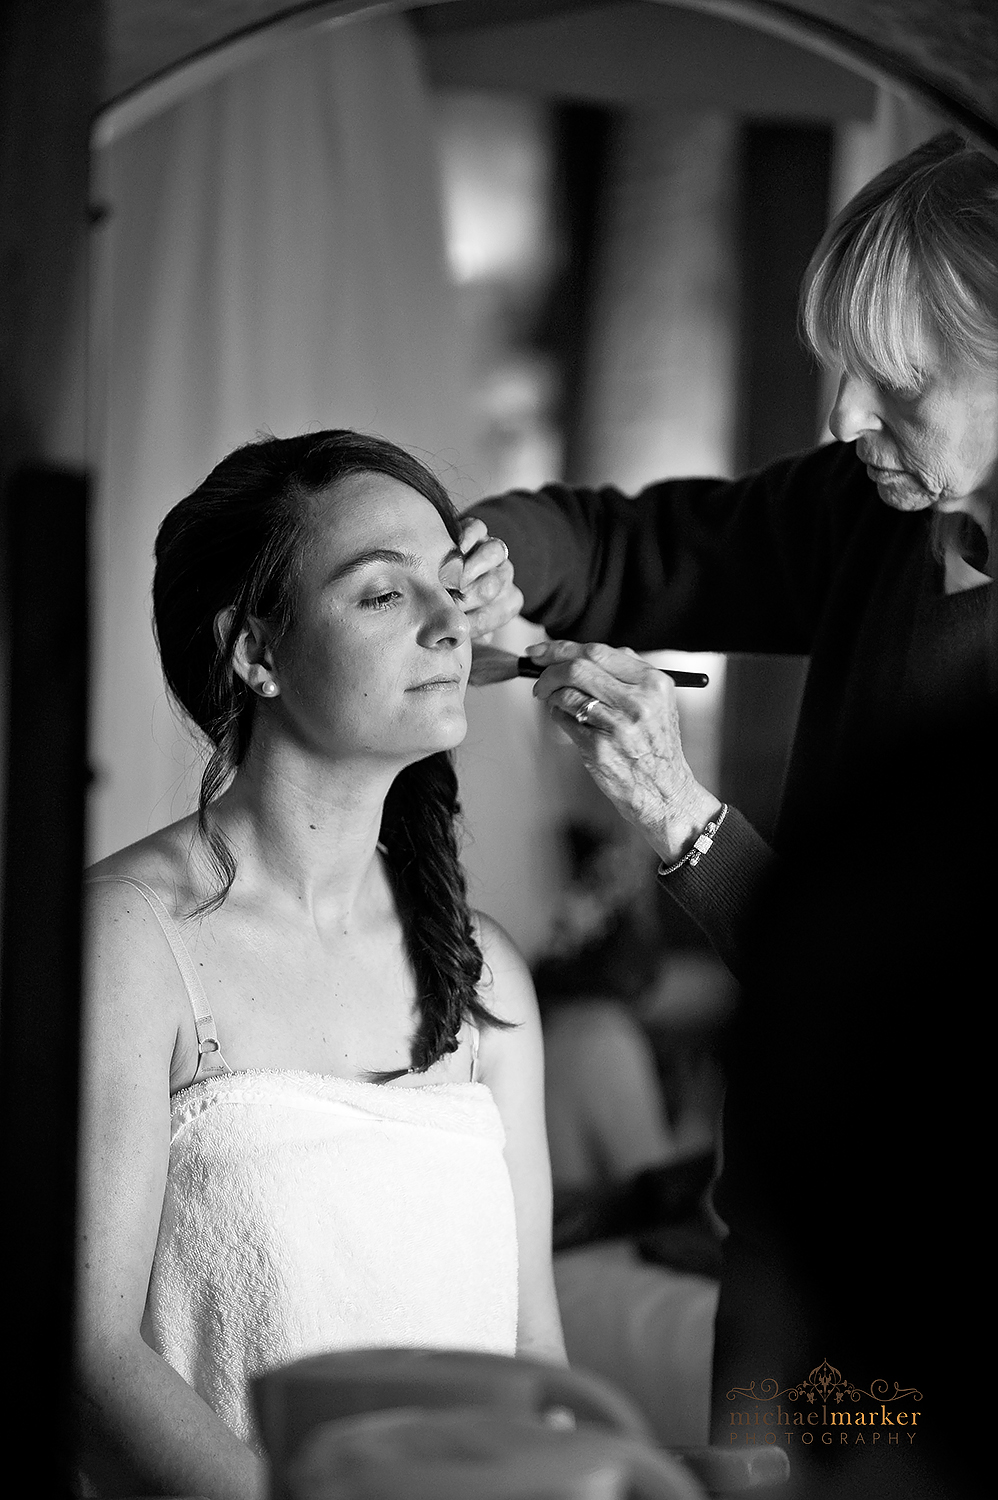 Applying blusher to bride in black and white